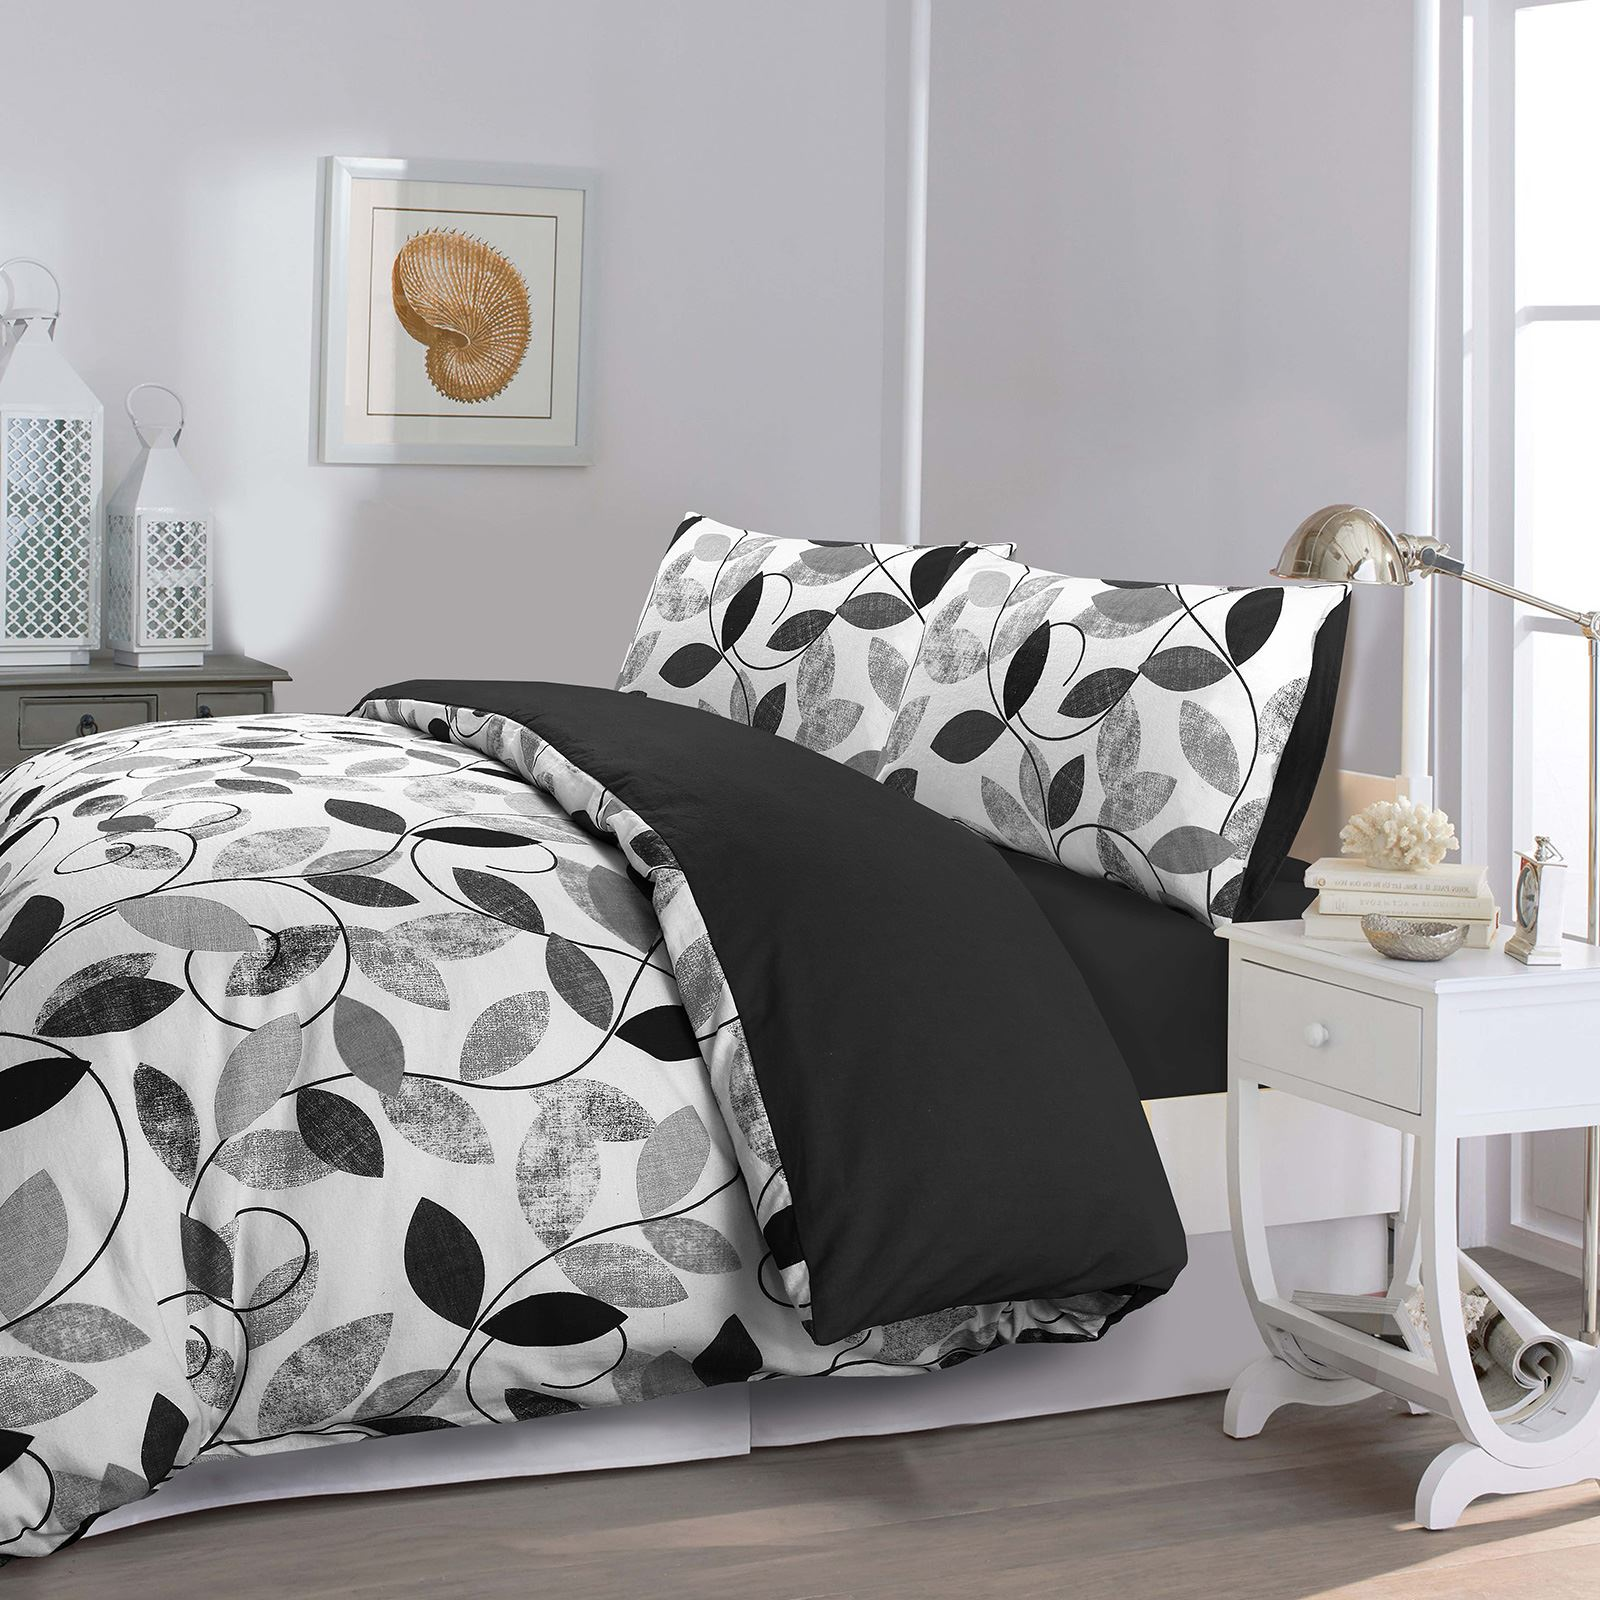 Flannel-100-Brushed-Cotton-Duvet-Cover-Bedding-Set-Single-Double-Super-King thumbnail 13